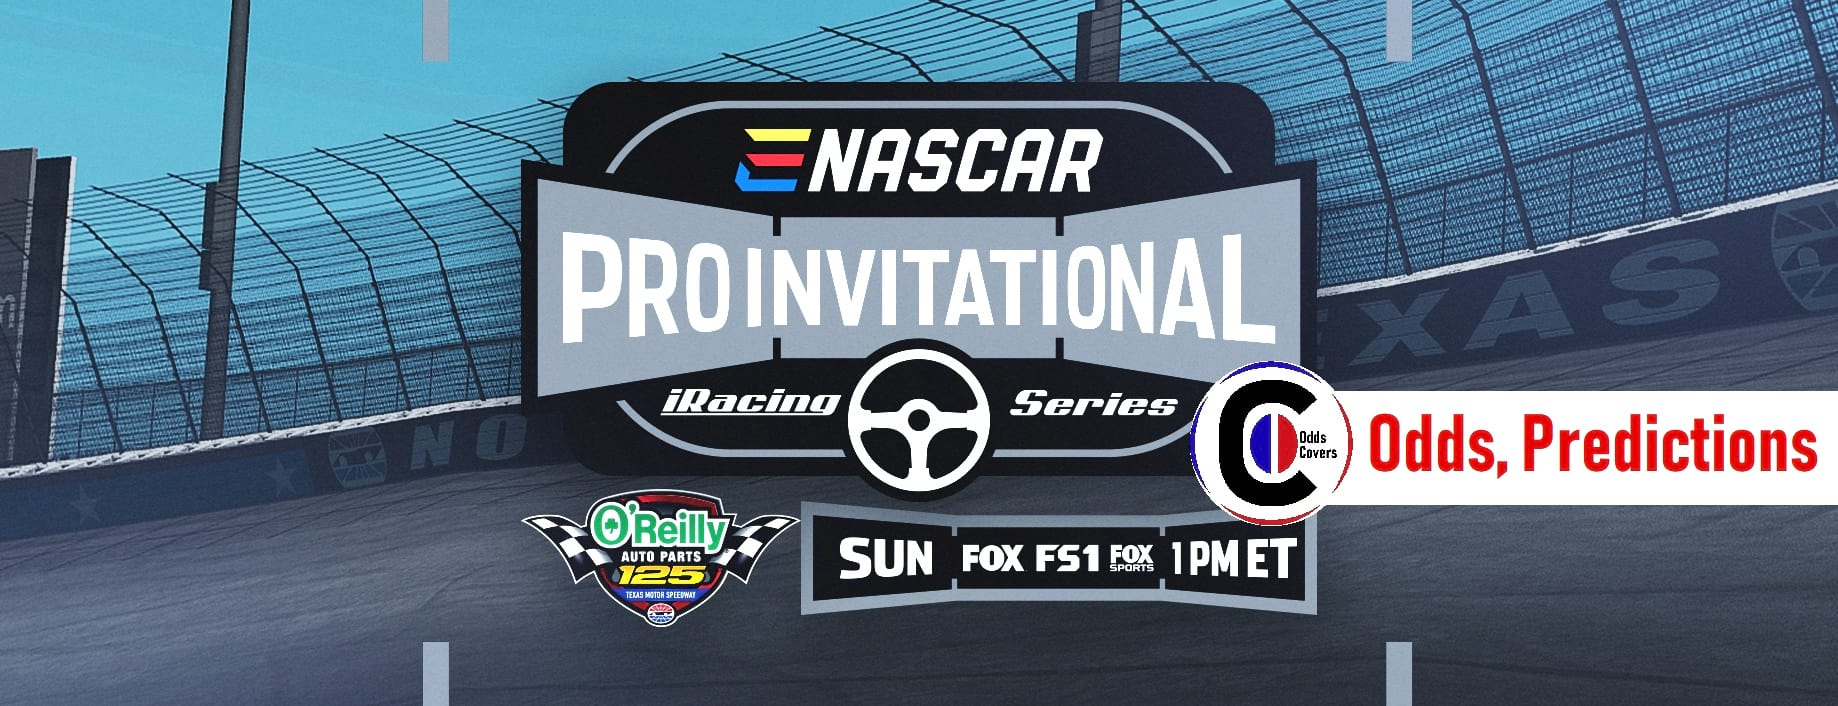 The inaugural race tore through 903,000 viewers on FOX Sports 1 and the first race was won by Denny Hamlin beating Dale Earnhardt Jr. on the last lap in an exciting and highly competitive race.